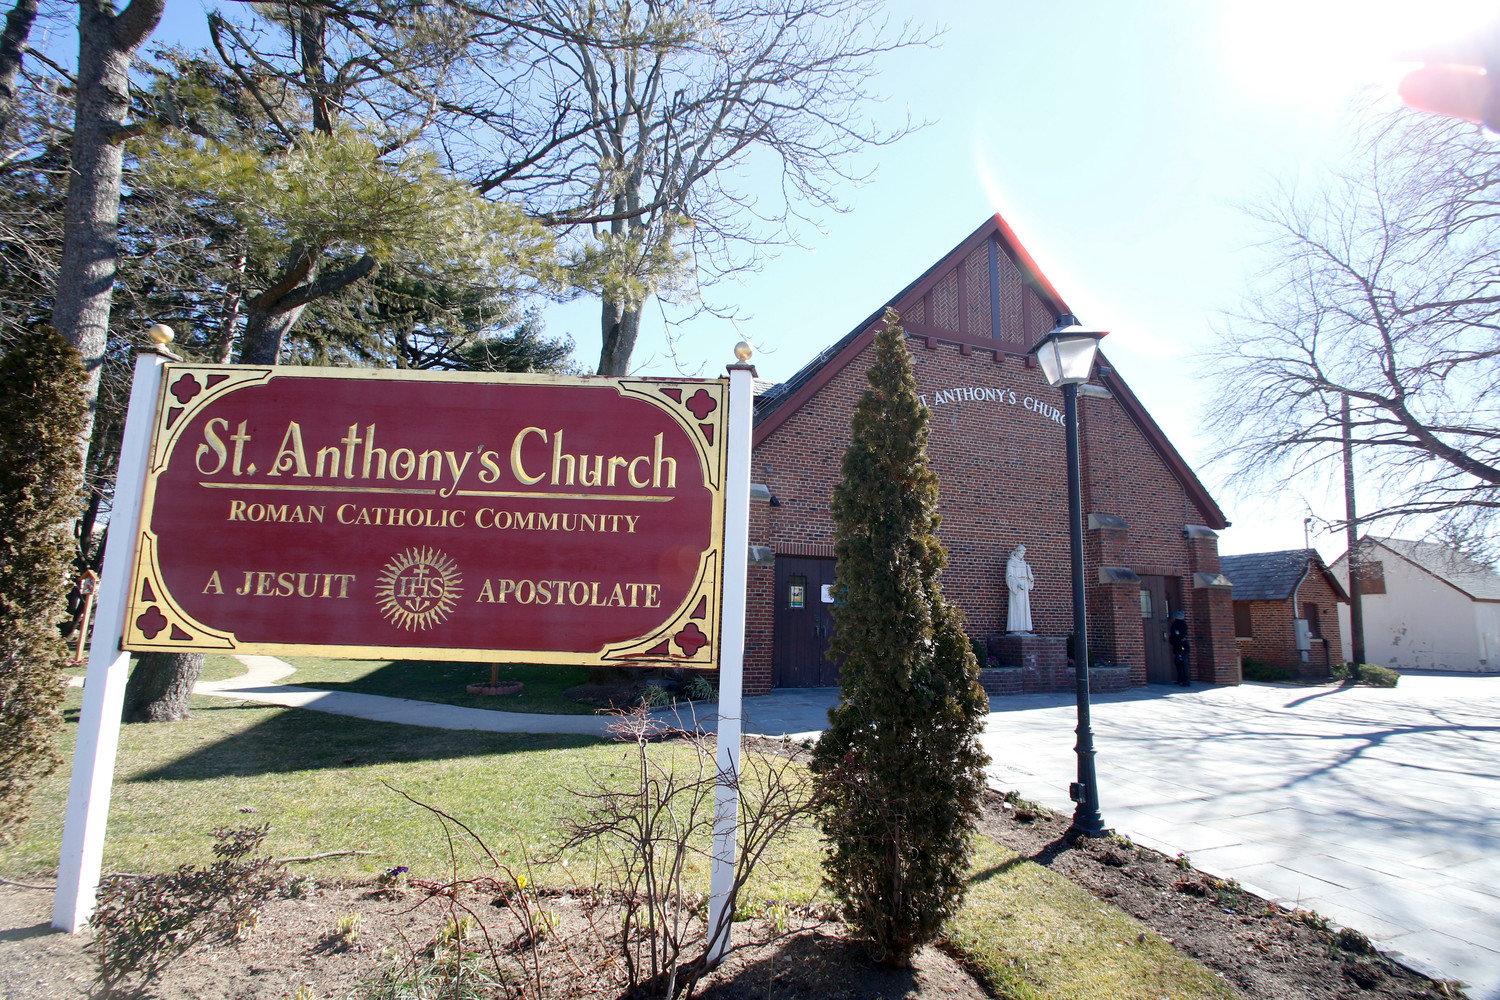 St. Anthony's Church's Fathers Club is partnering with The Wine Cellar to promote a virtual wine tasting event on April 24.